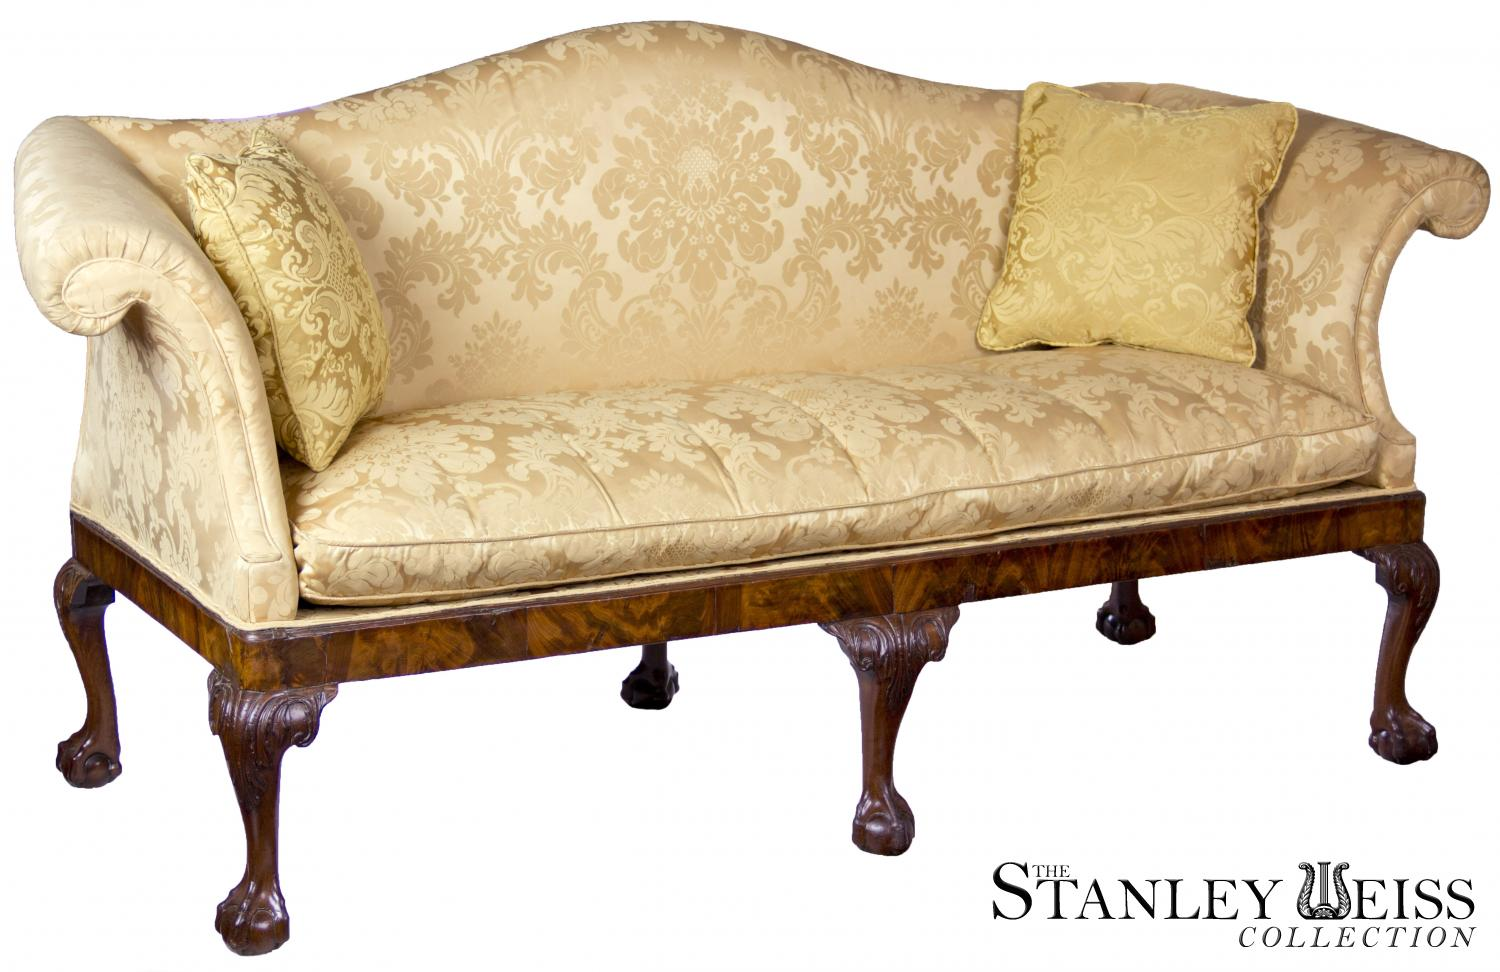 A George Ii Mahogany Chippendale Camelback Sofa With Claw And Ball Feet English Or Irish C